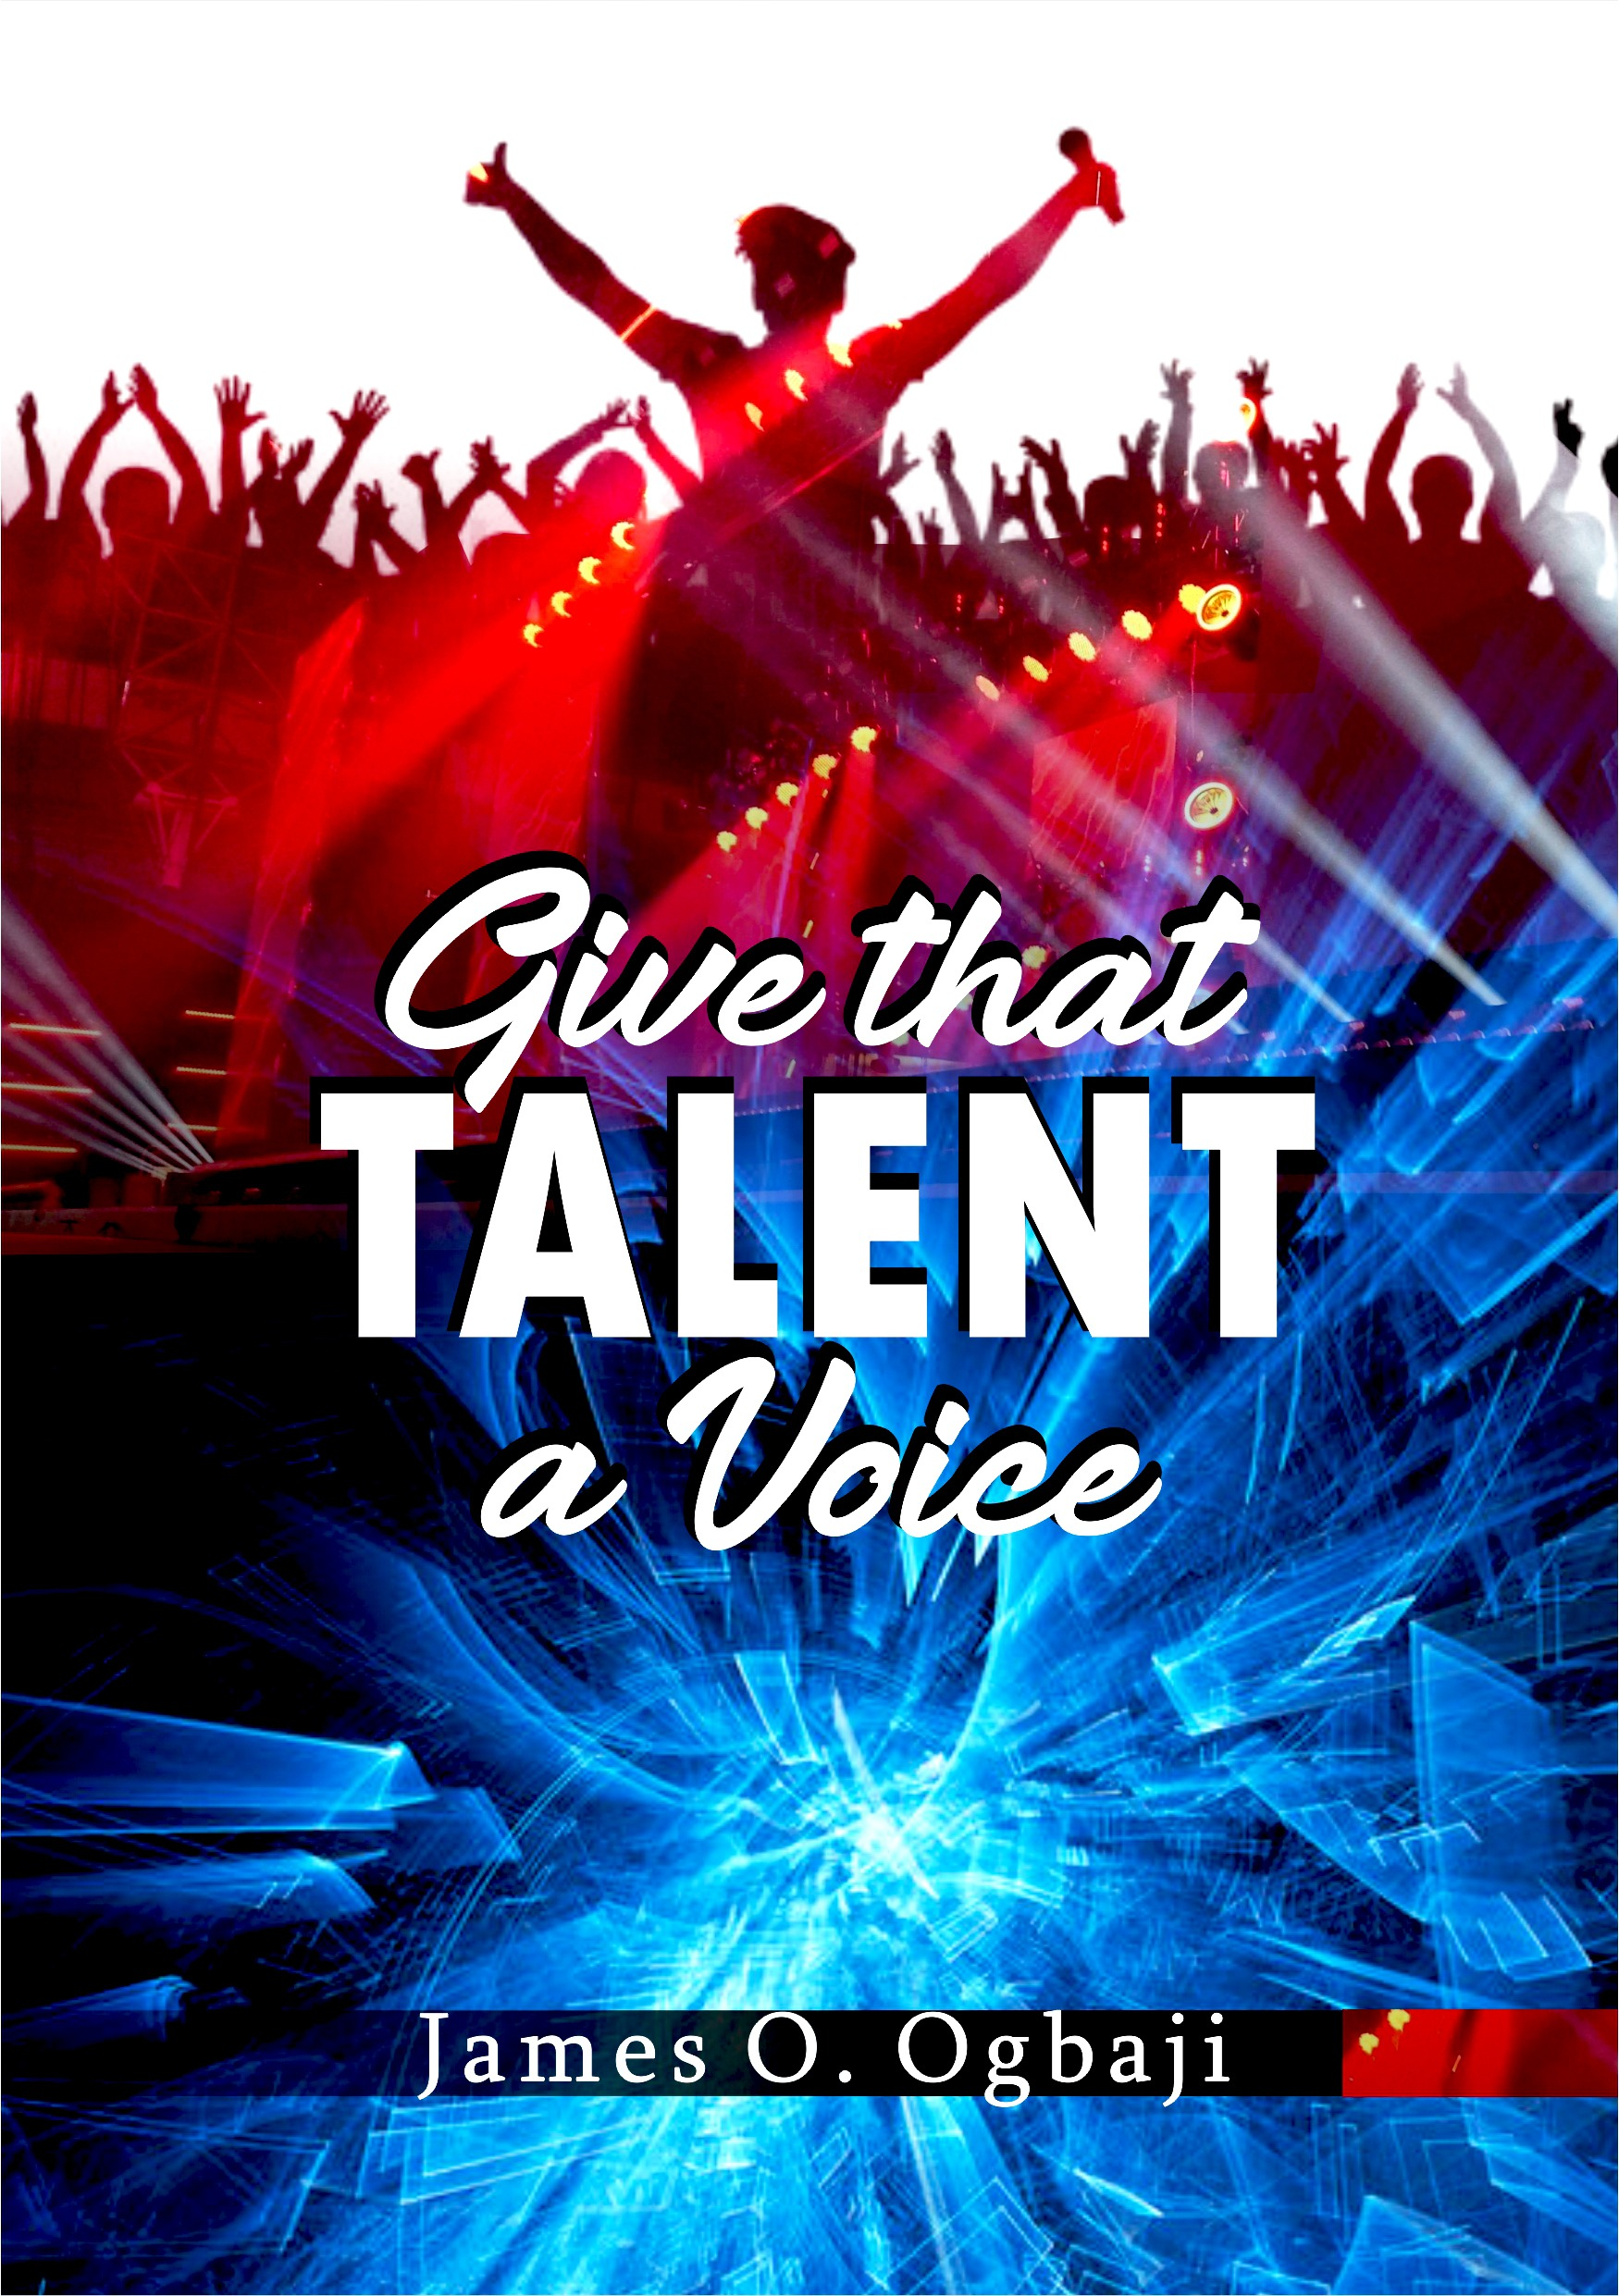 Give that Talent a Voice